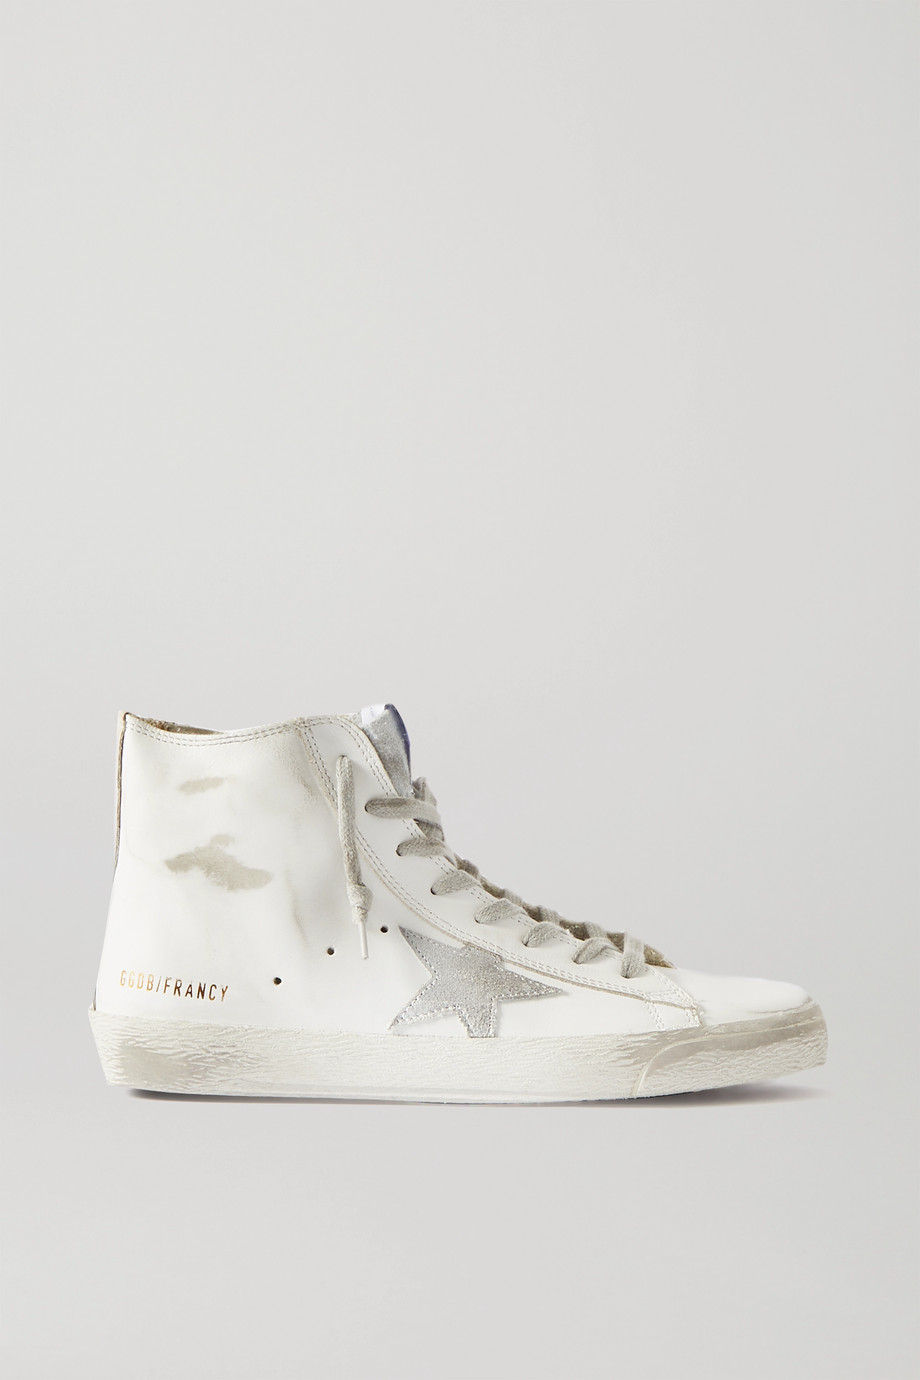 GOLDEN GOOSE Francy glittered distressed leather and suede high-top sneakers